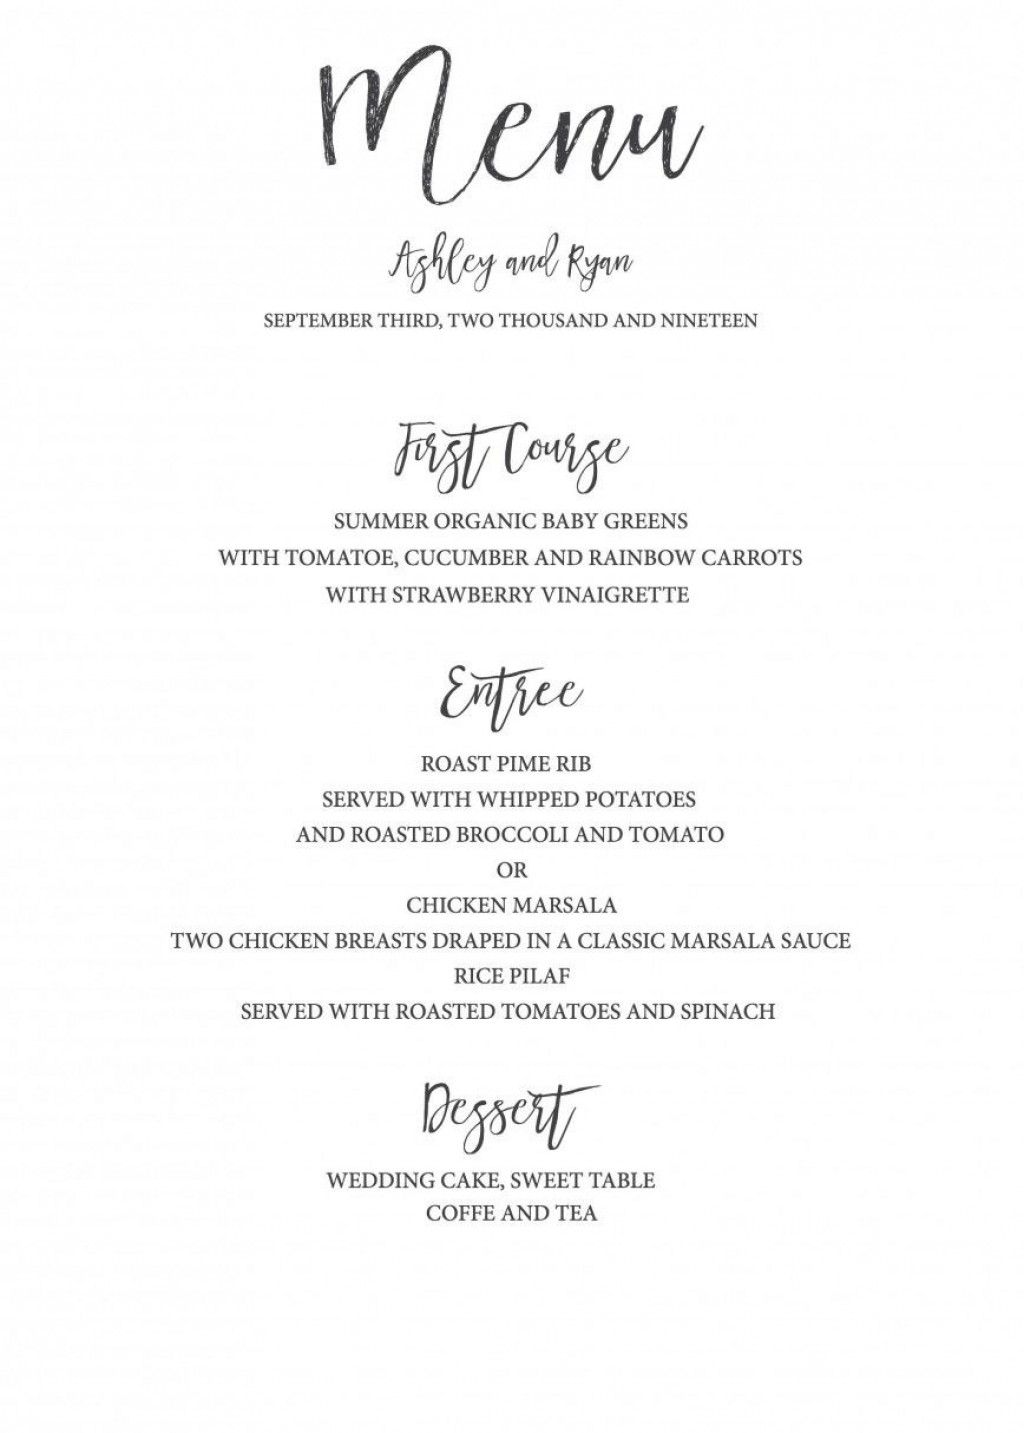 001 Astounding Free Printable Wedding Menu Card Template Highest Clarity Large